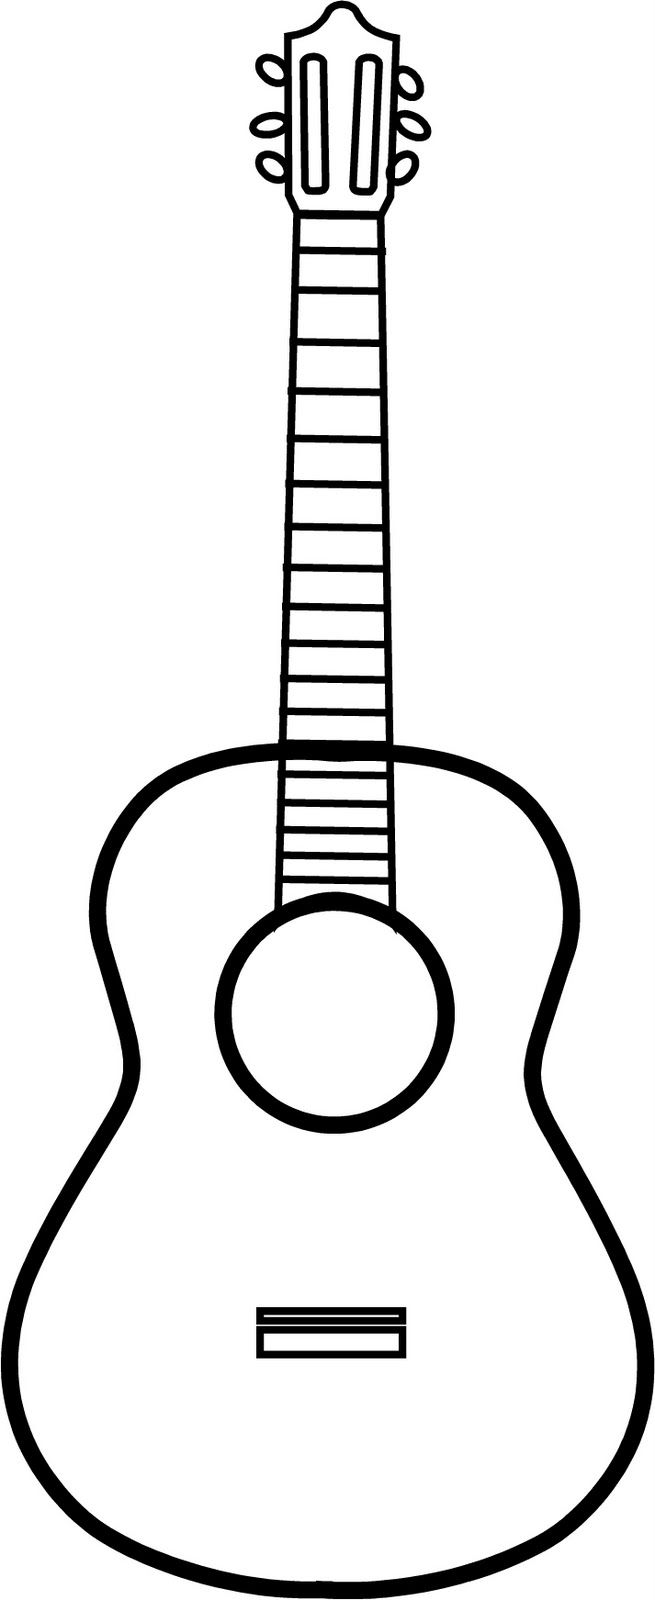 Guitar Outline | Vinyl On The Go: Guitar